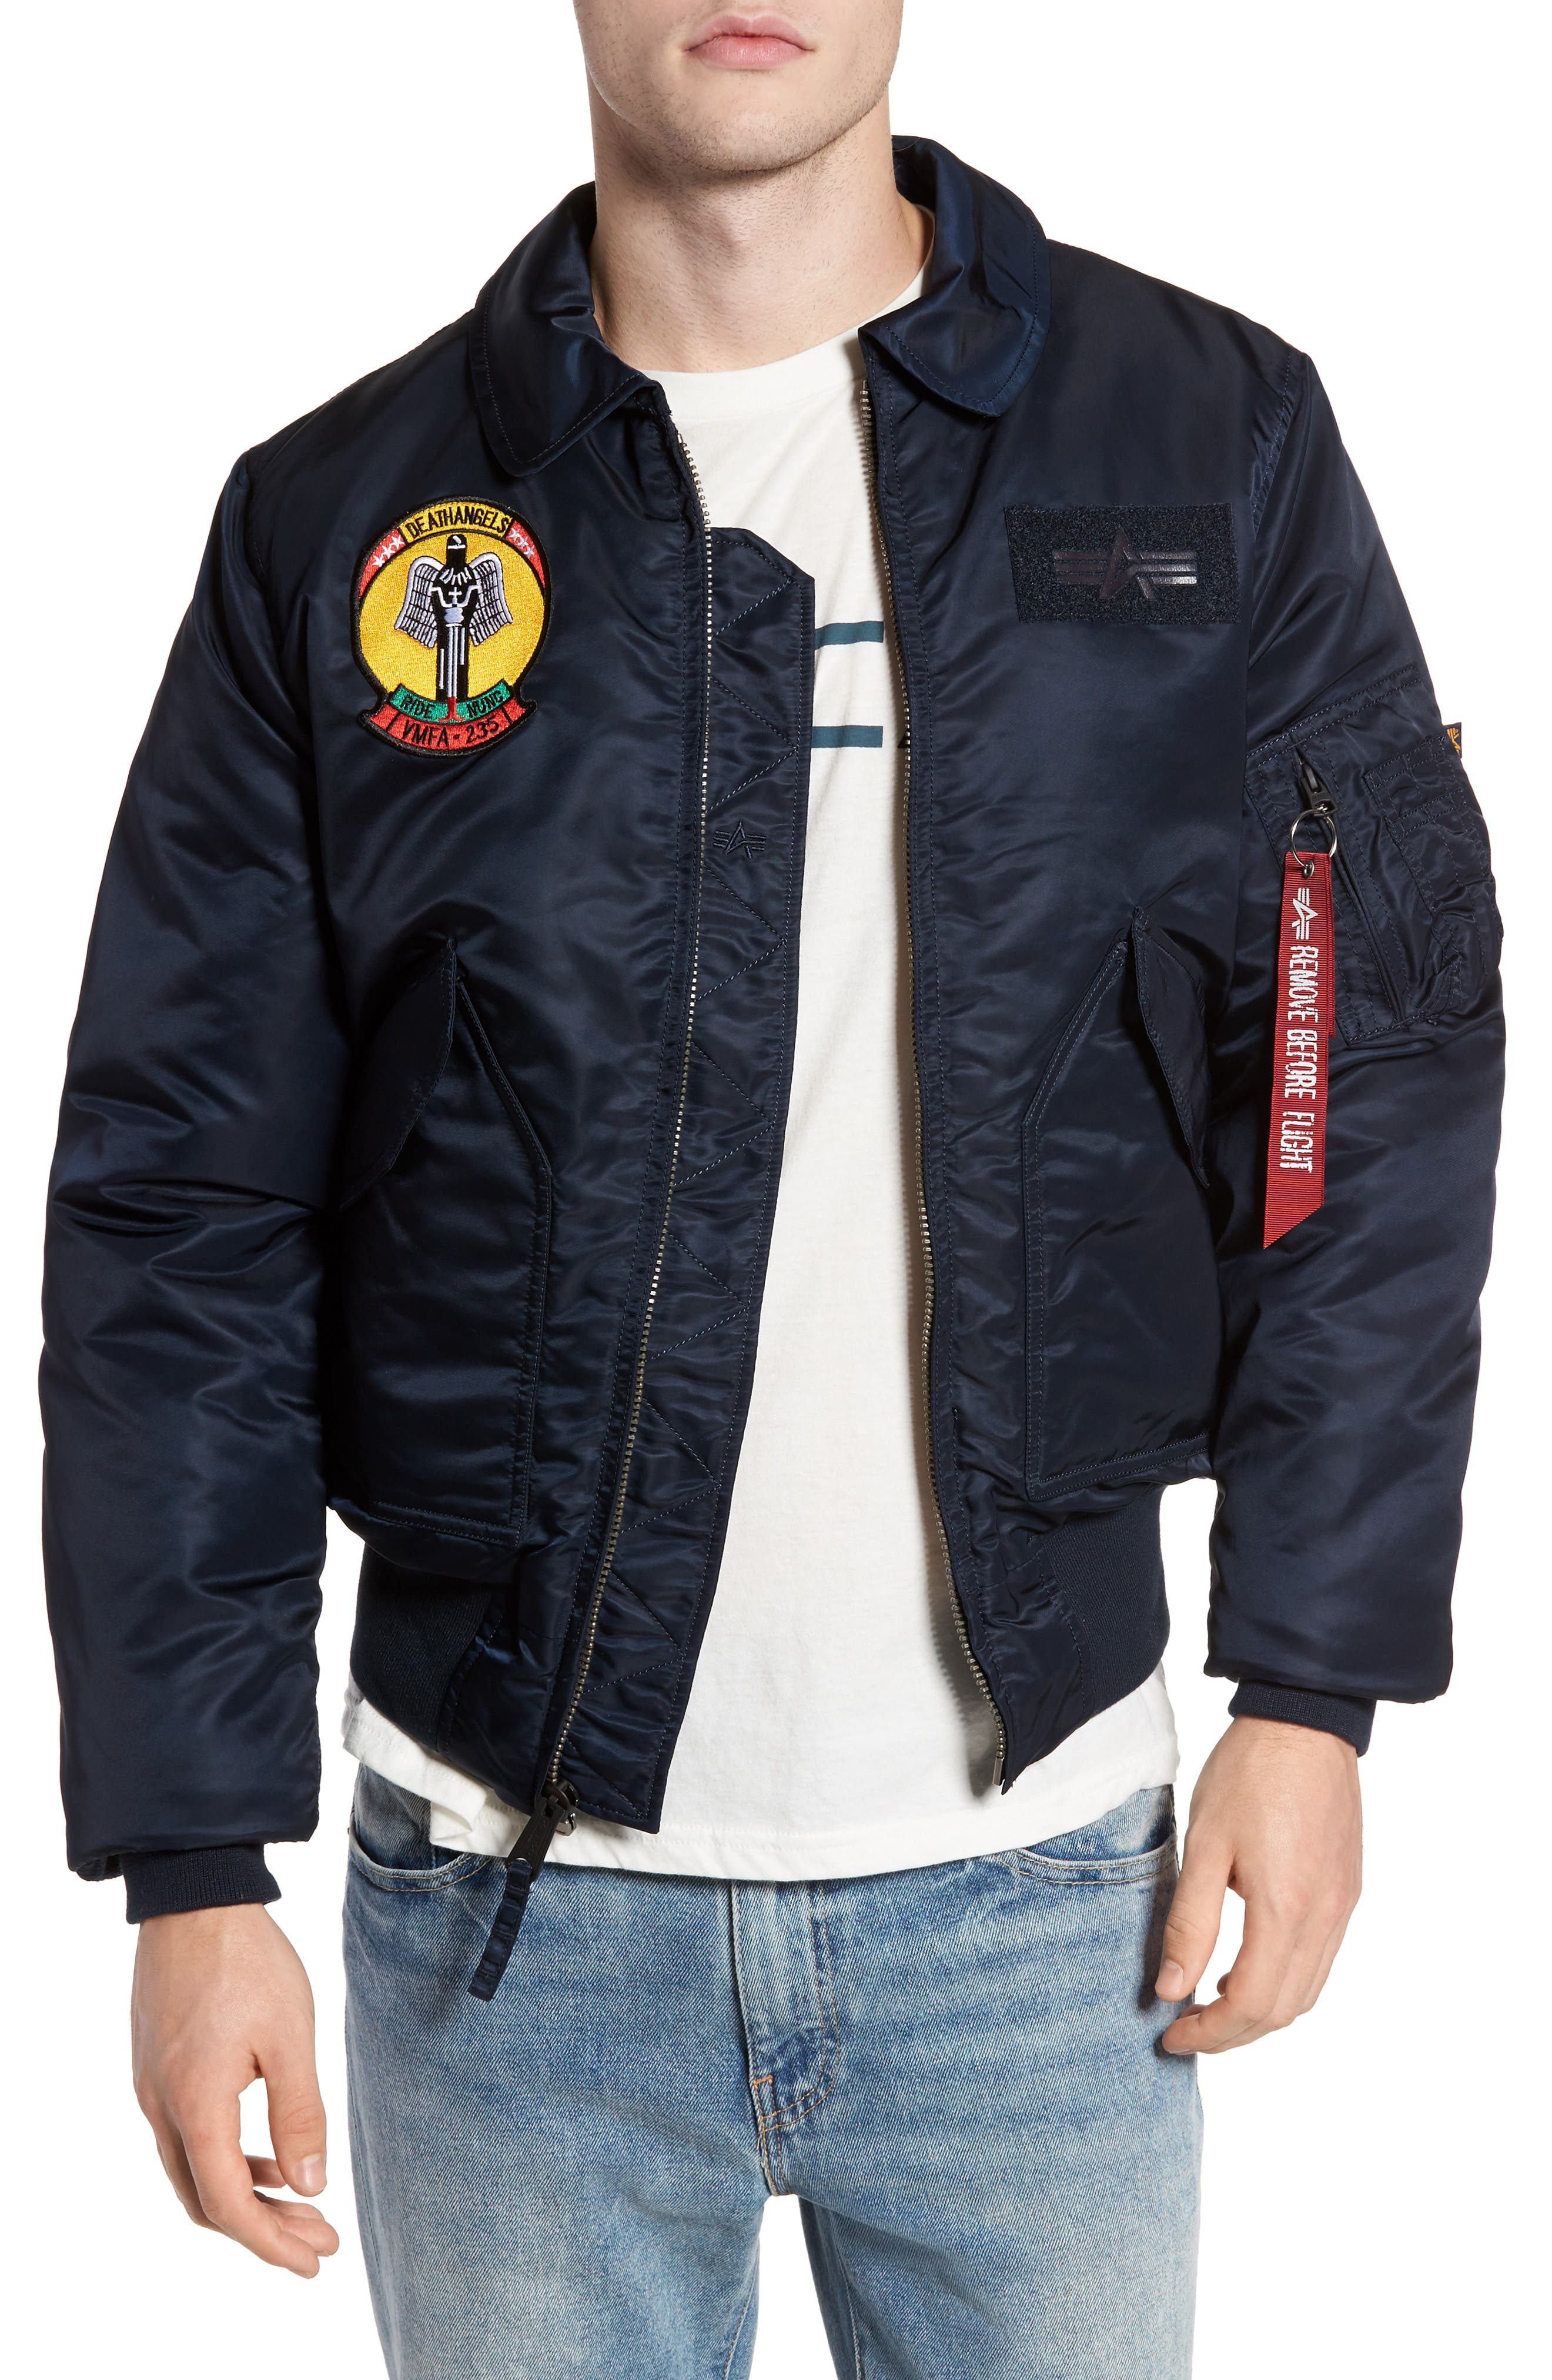 CWO 45/P Storm Cruise Jacket,                         Main,                         color, Replica Blue